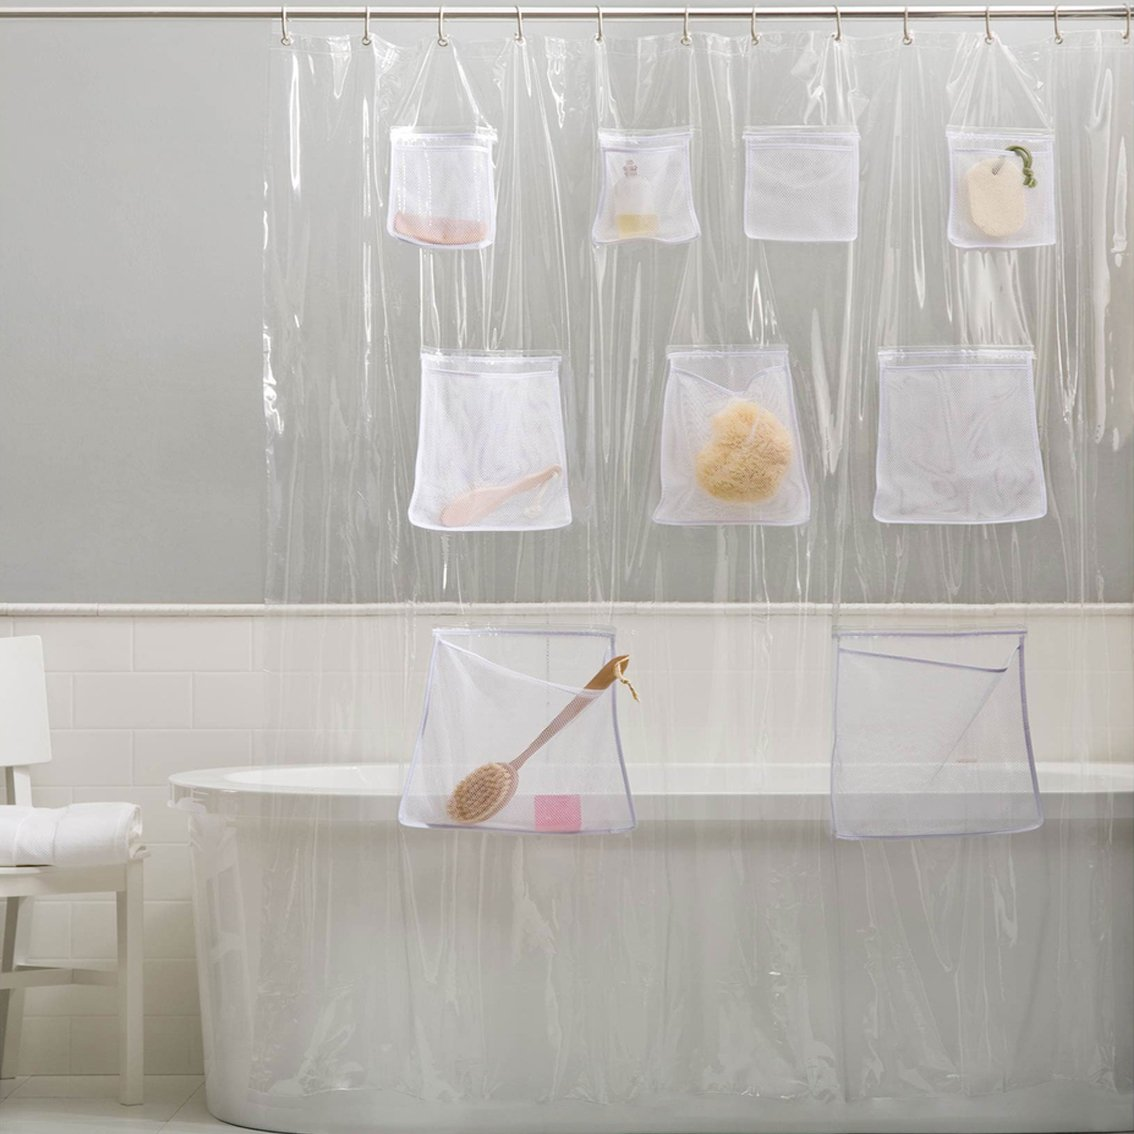 Amazon Sweet Home Collection 100 PEVA 70 X 72 Shower Curtain Treated To Prevent Chlorine And Odor With 9 Mesh Pockets For Bath Storage